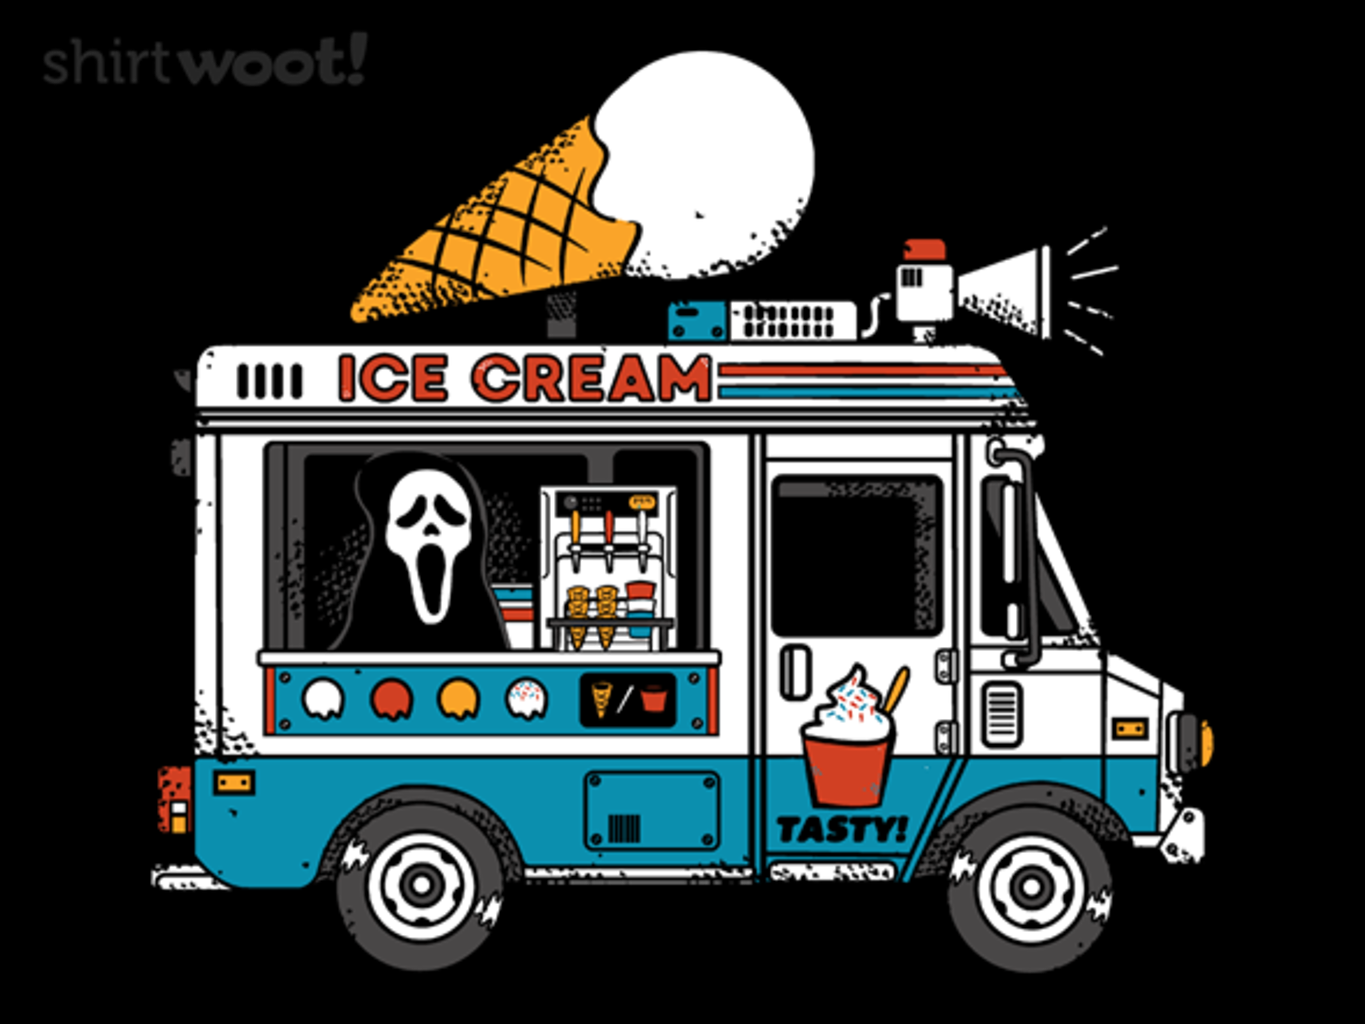 Woot!: Ice Scream